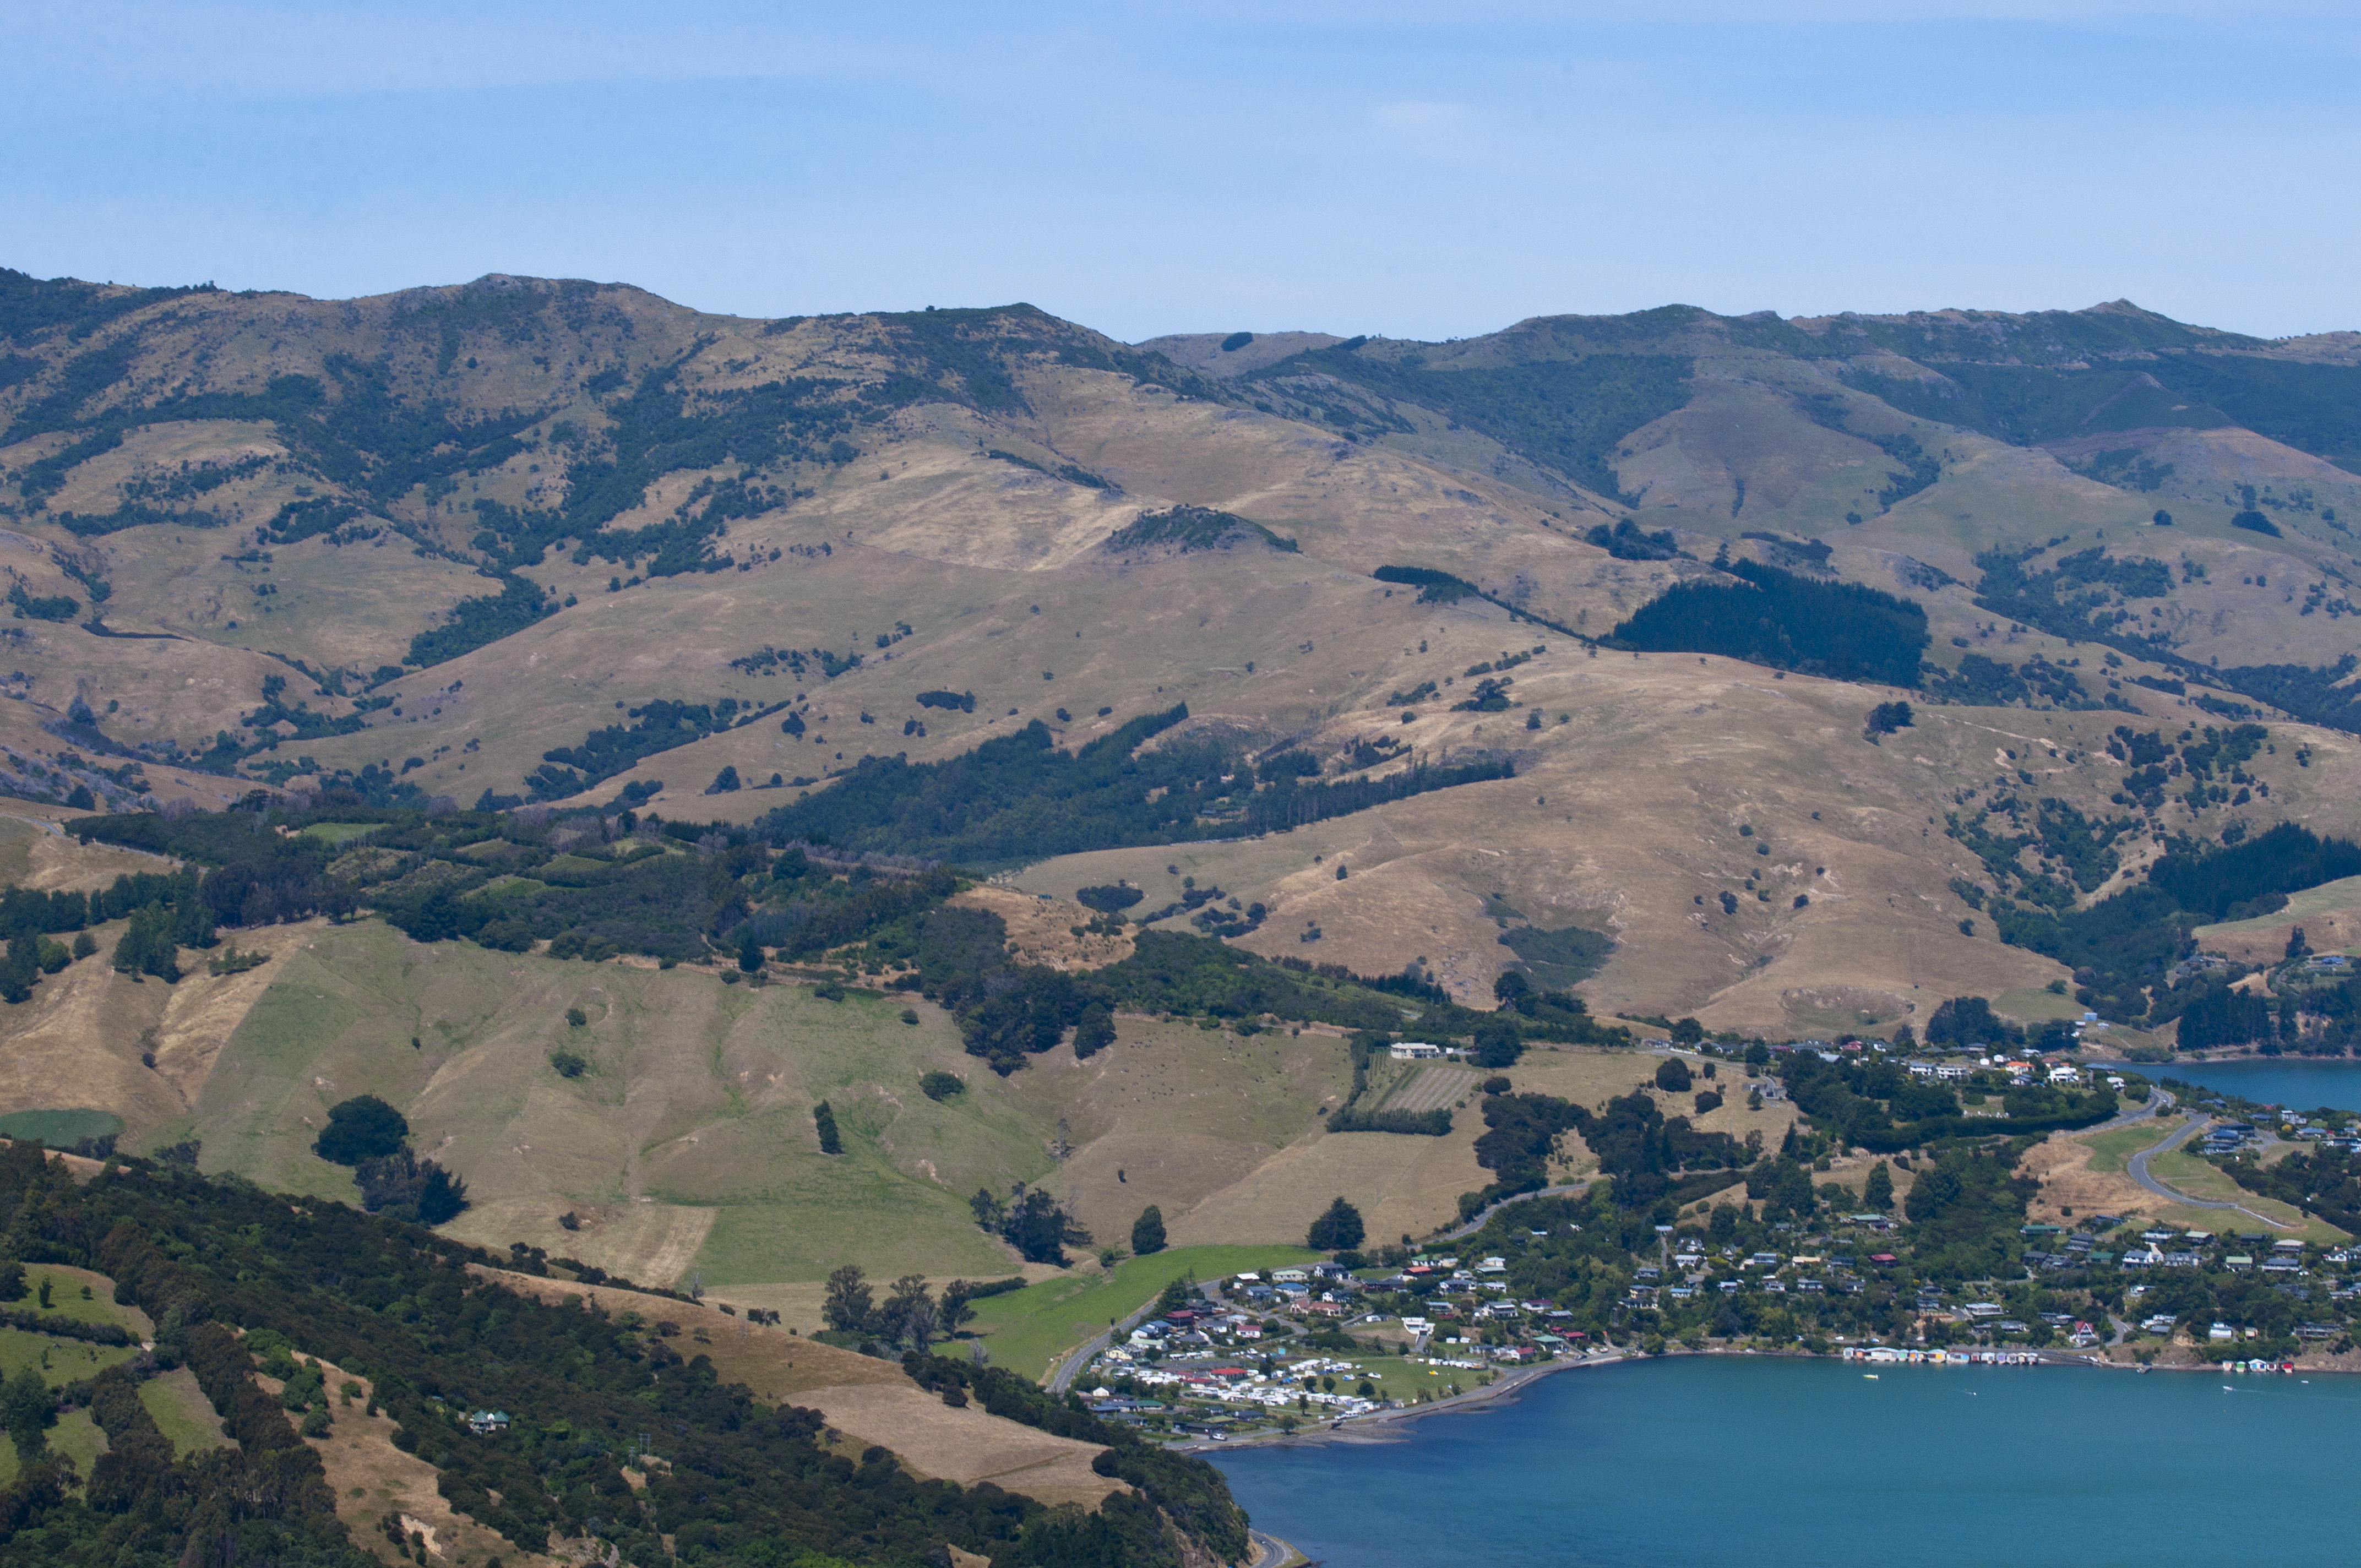 On the road to Akaroa, Aerial, Grass, Landscape, Mountain, HQ Photo